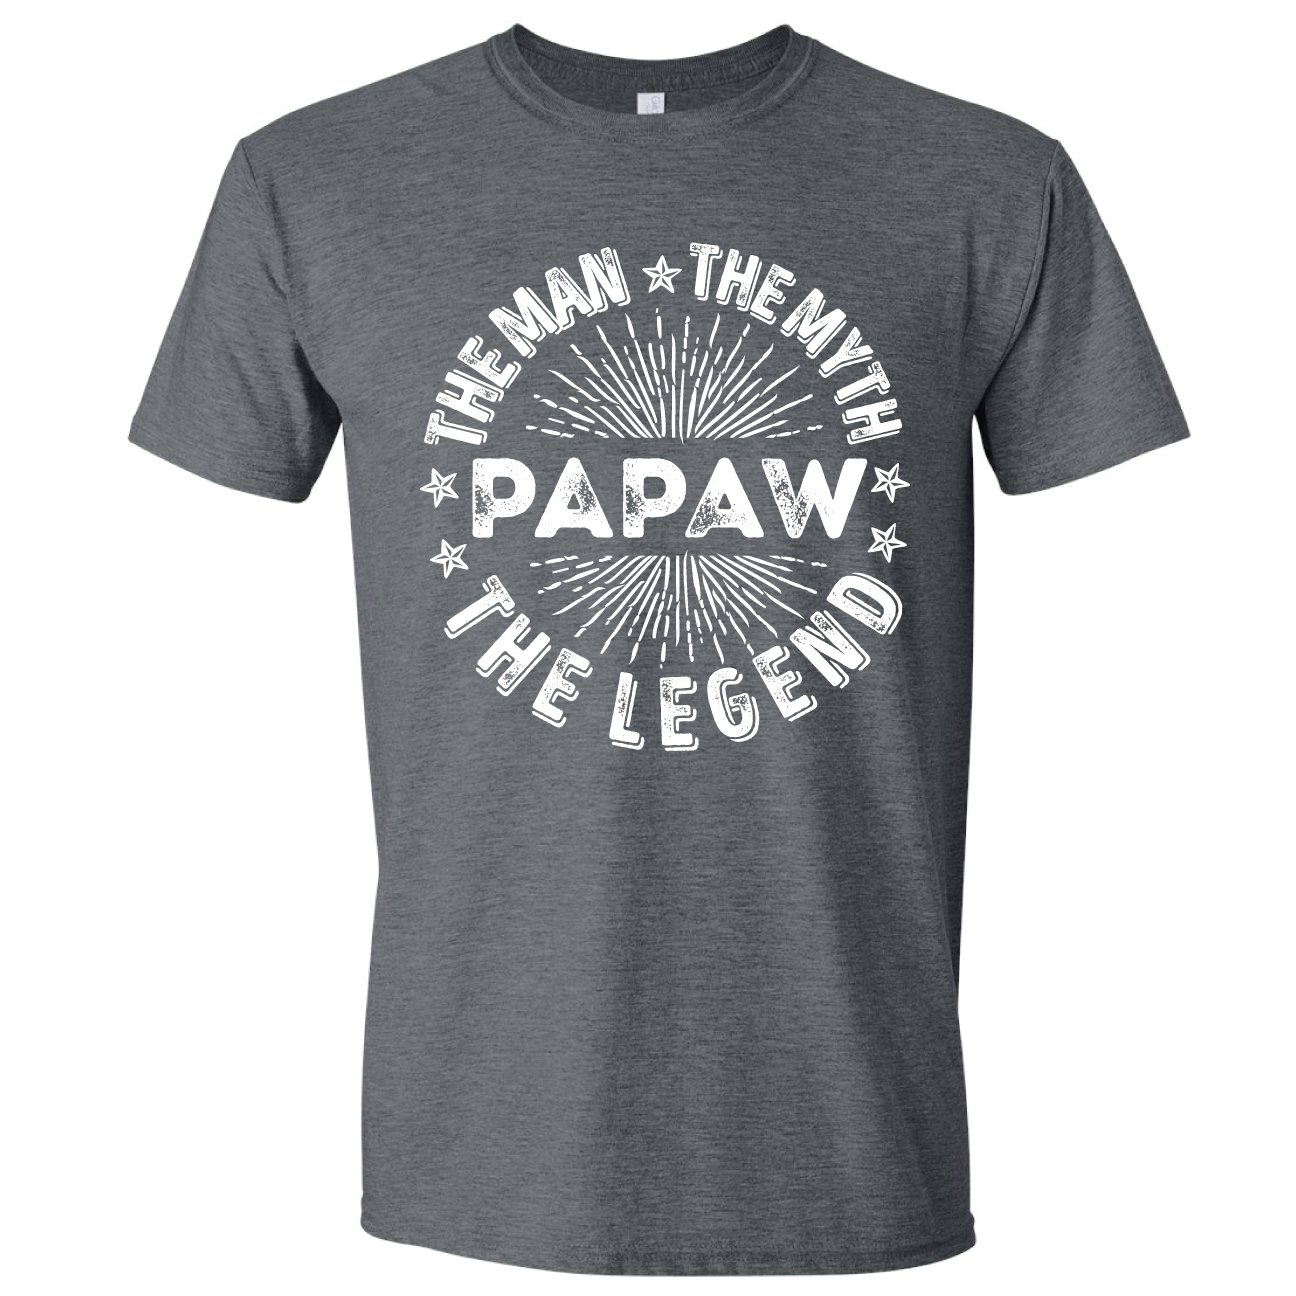 Texas Tees Man Myth Legend Papaw, Tshirt For Papaw, Present For Papaw, Mens Gray 3XL Shirt